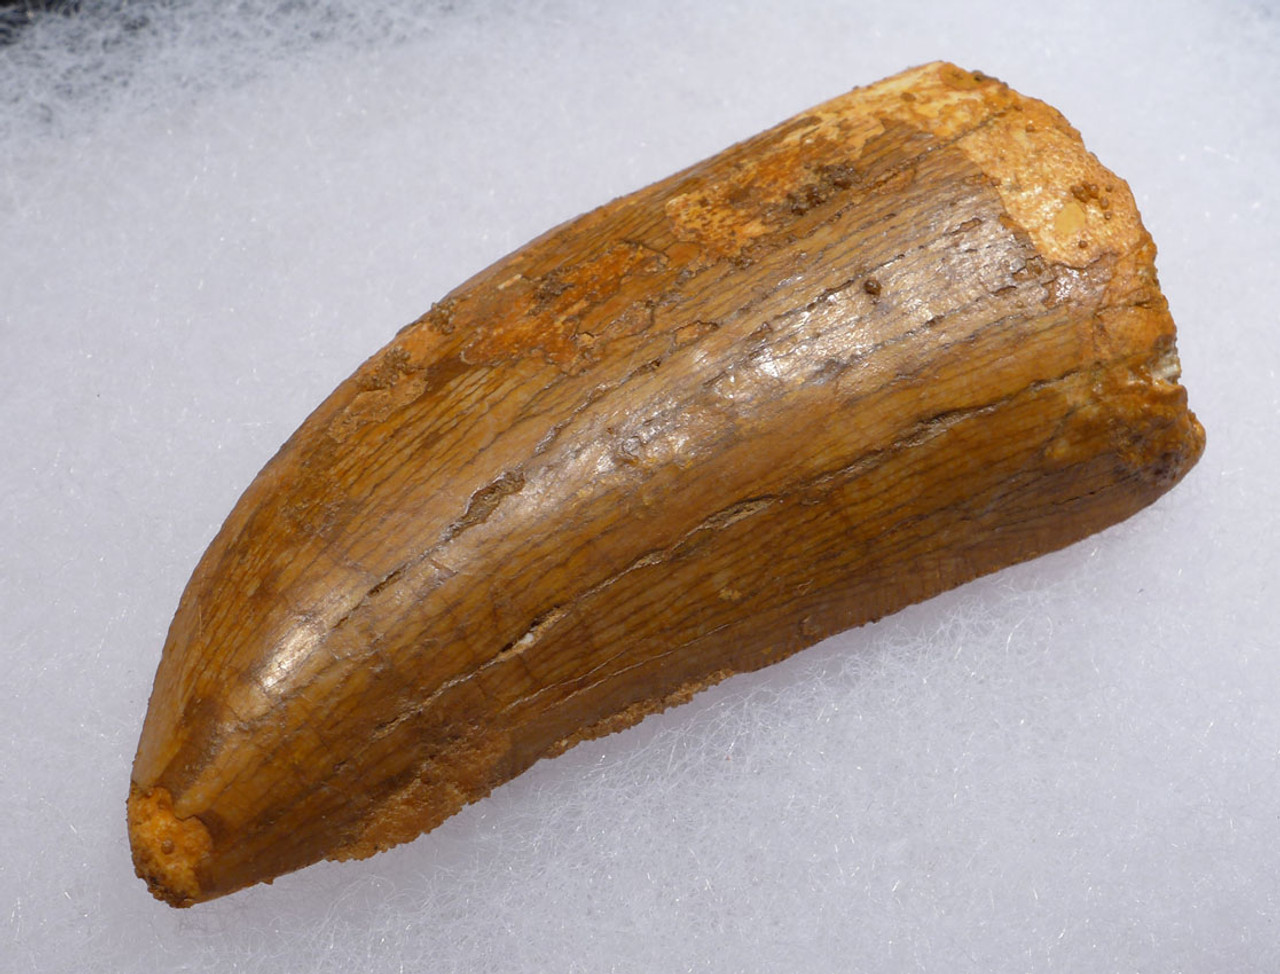 DT2-087 - THICK 2.5 INCH UNBROKEN CARCHARODONTOSAURUS FOSSIL TOOTH FROM THE LARGEST MEAT-EATING DINOSAUR